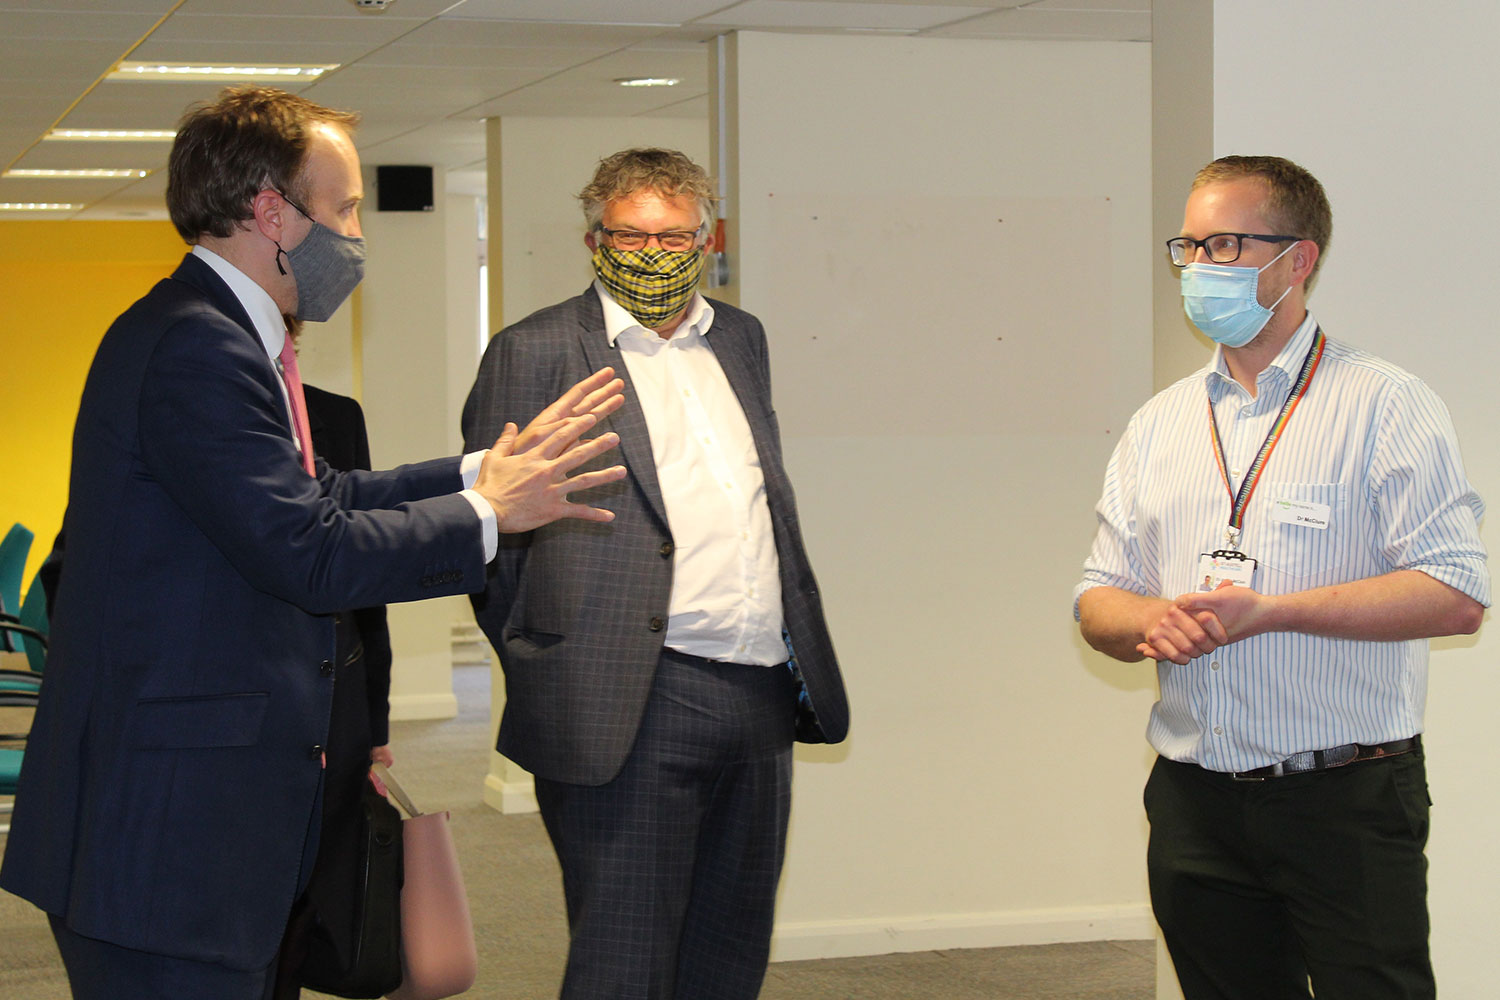 Matt Hancock with MP Steve Double and Dr James McClure, from St Austell Healthcare